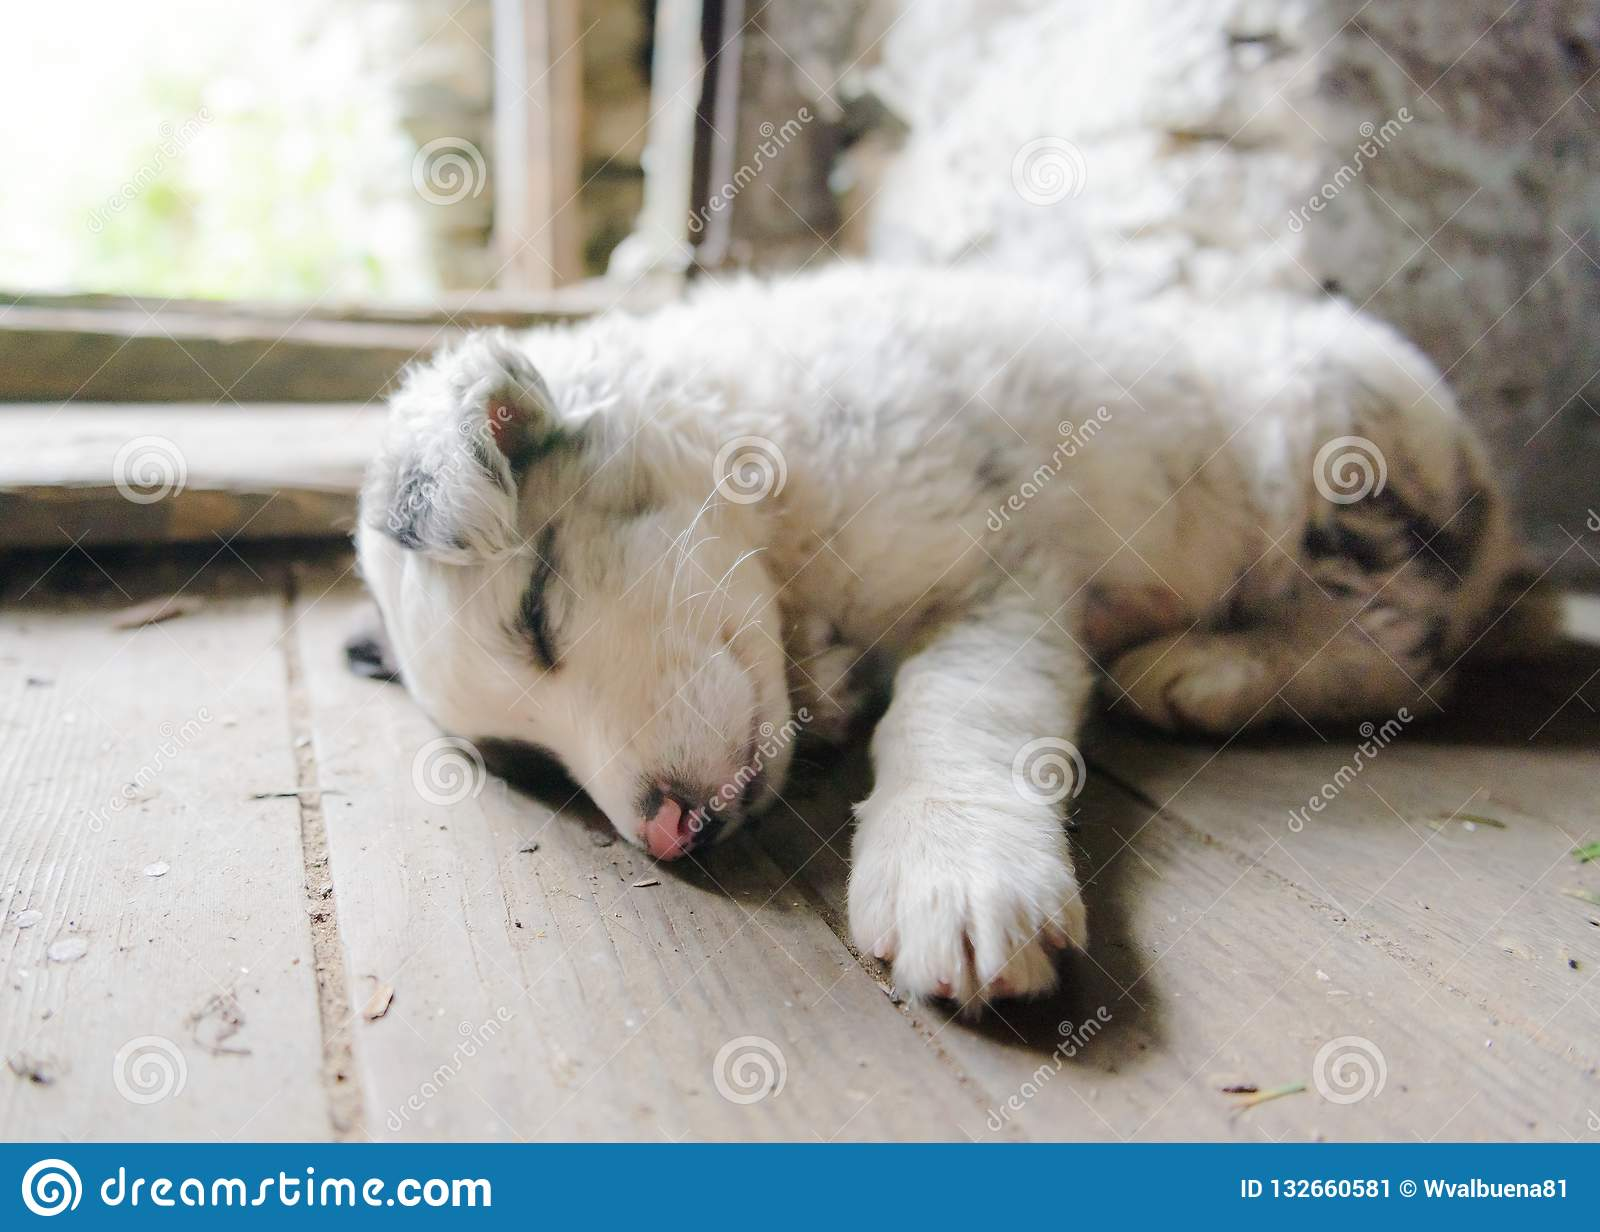 Cute and small puppy dog sleeping